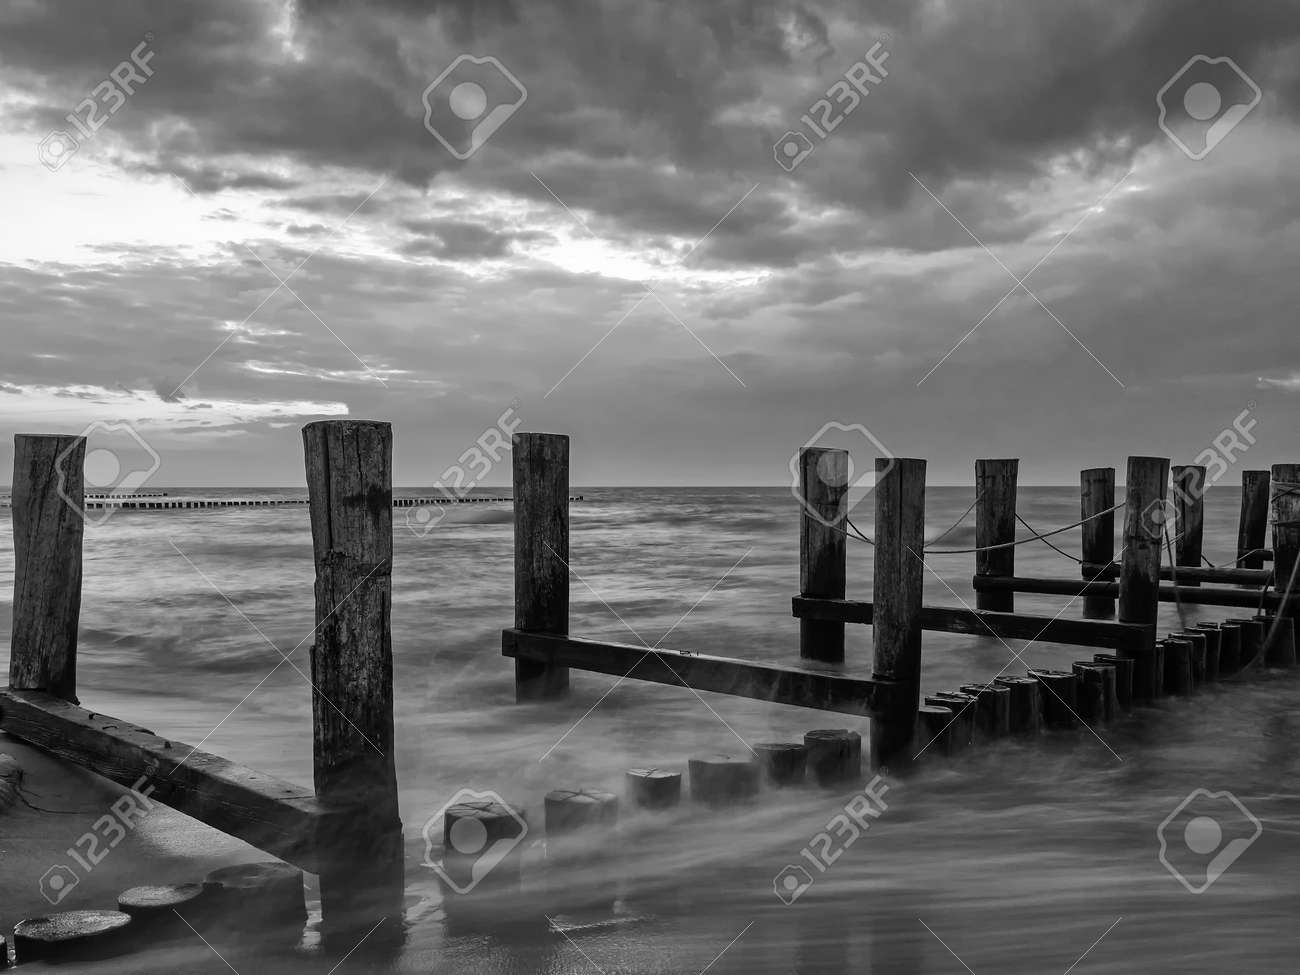 Monochrome image of a groyne in the Baltic Sea near to Zingst, Mecklenburg-Western Pomerania, at twilight - 155472855